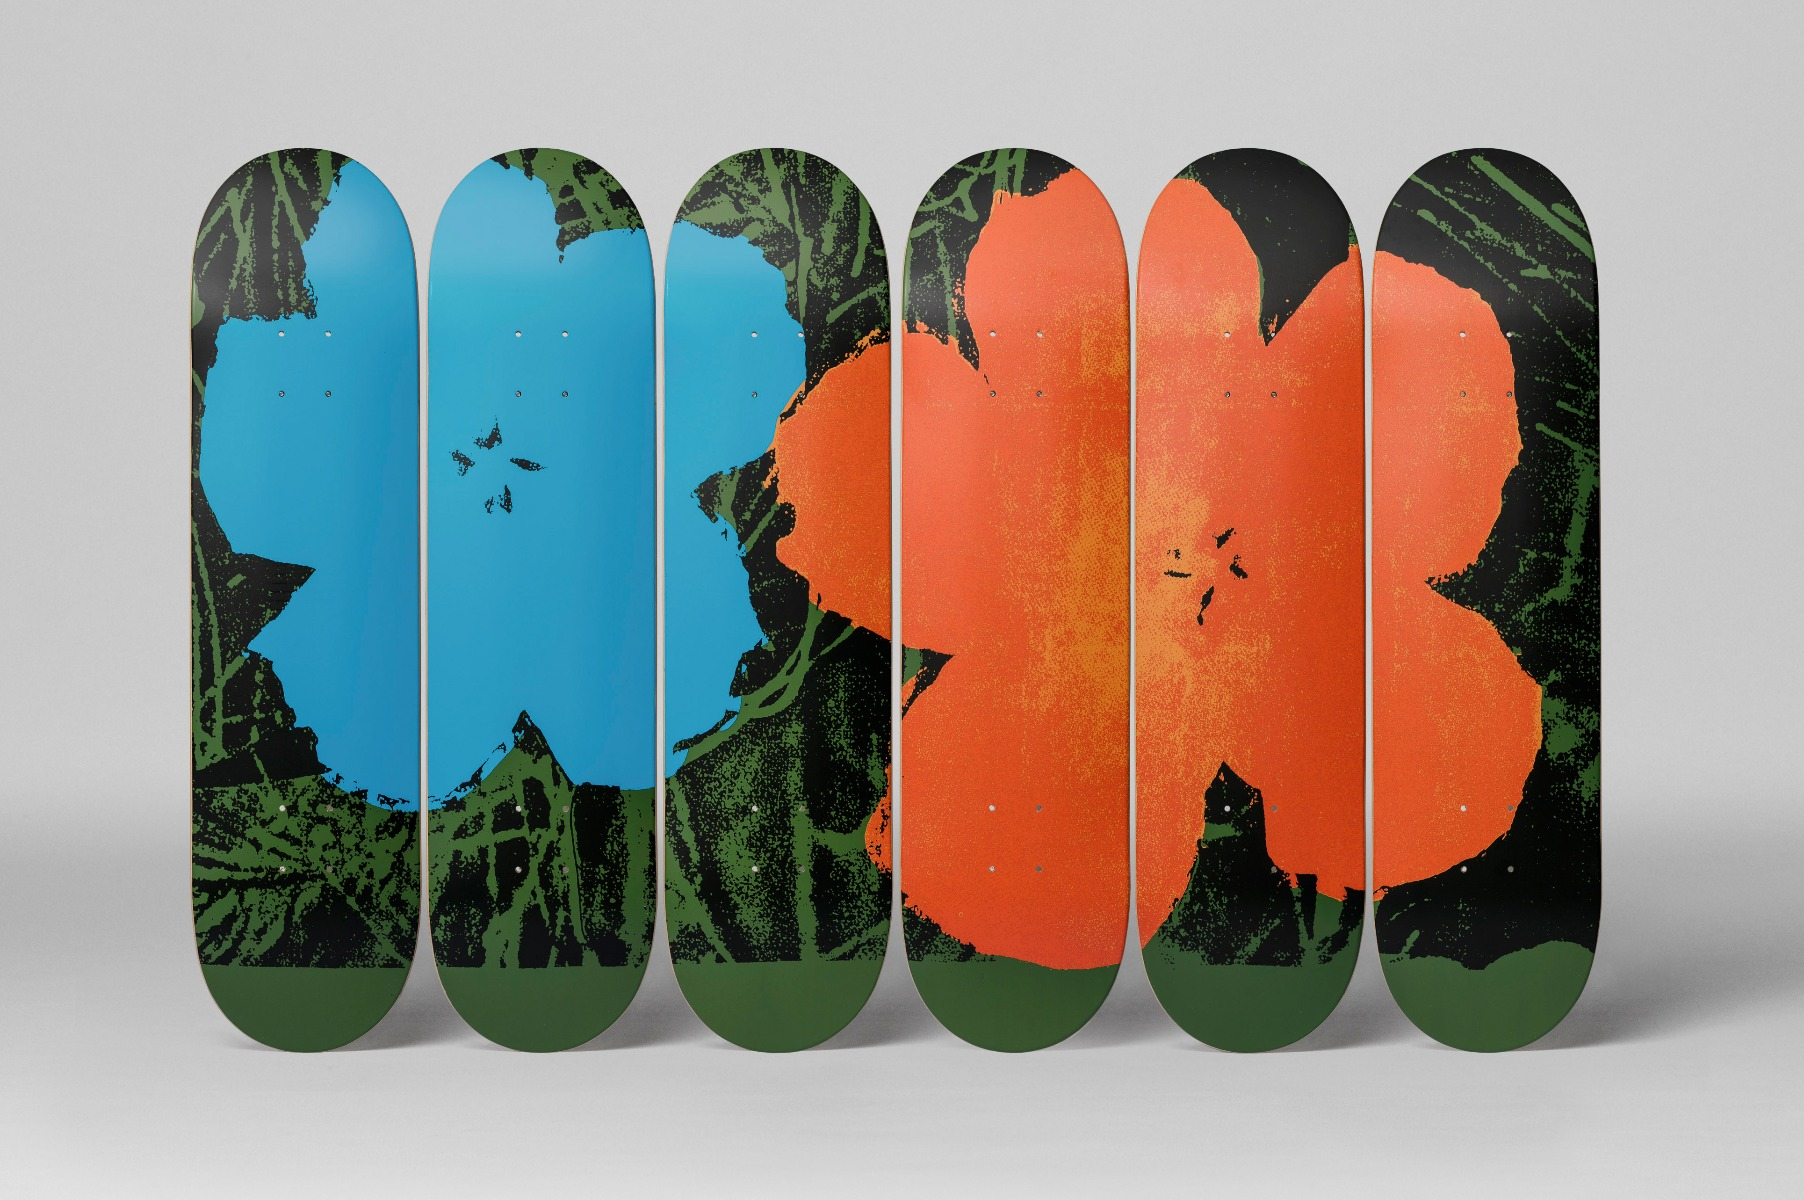 A group of skateboards with Warhol flower decals